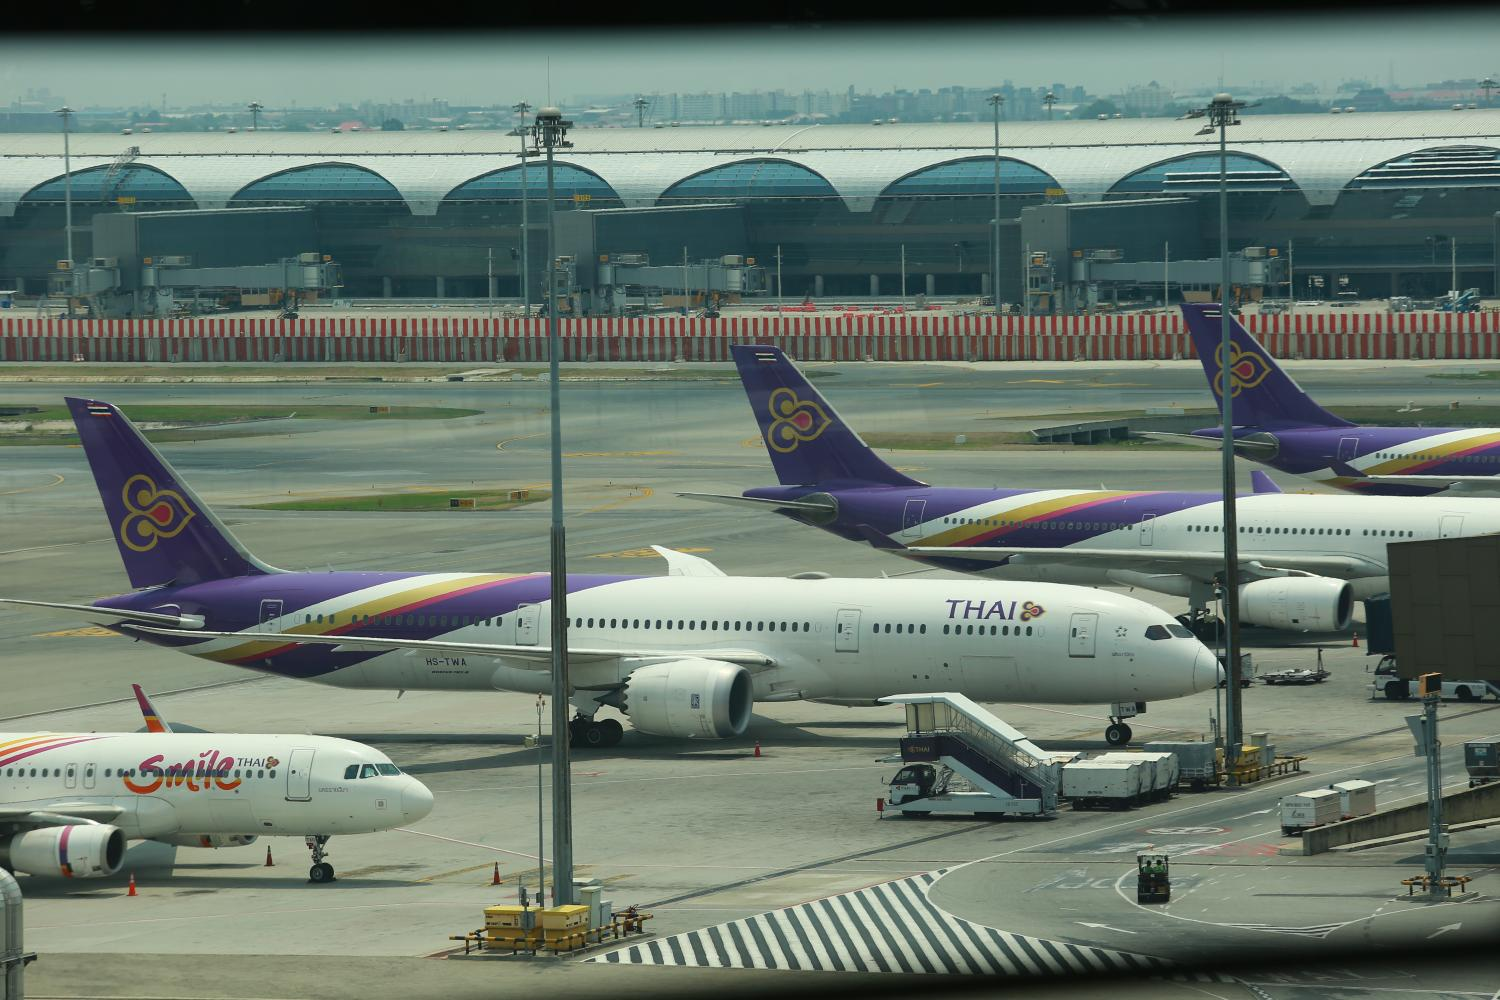 THAI aeroplanes parked at Suvarnabhumi airport. With tourism at a standstill, operators are anxious for aid.(Photo by Somchai Poomlard)